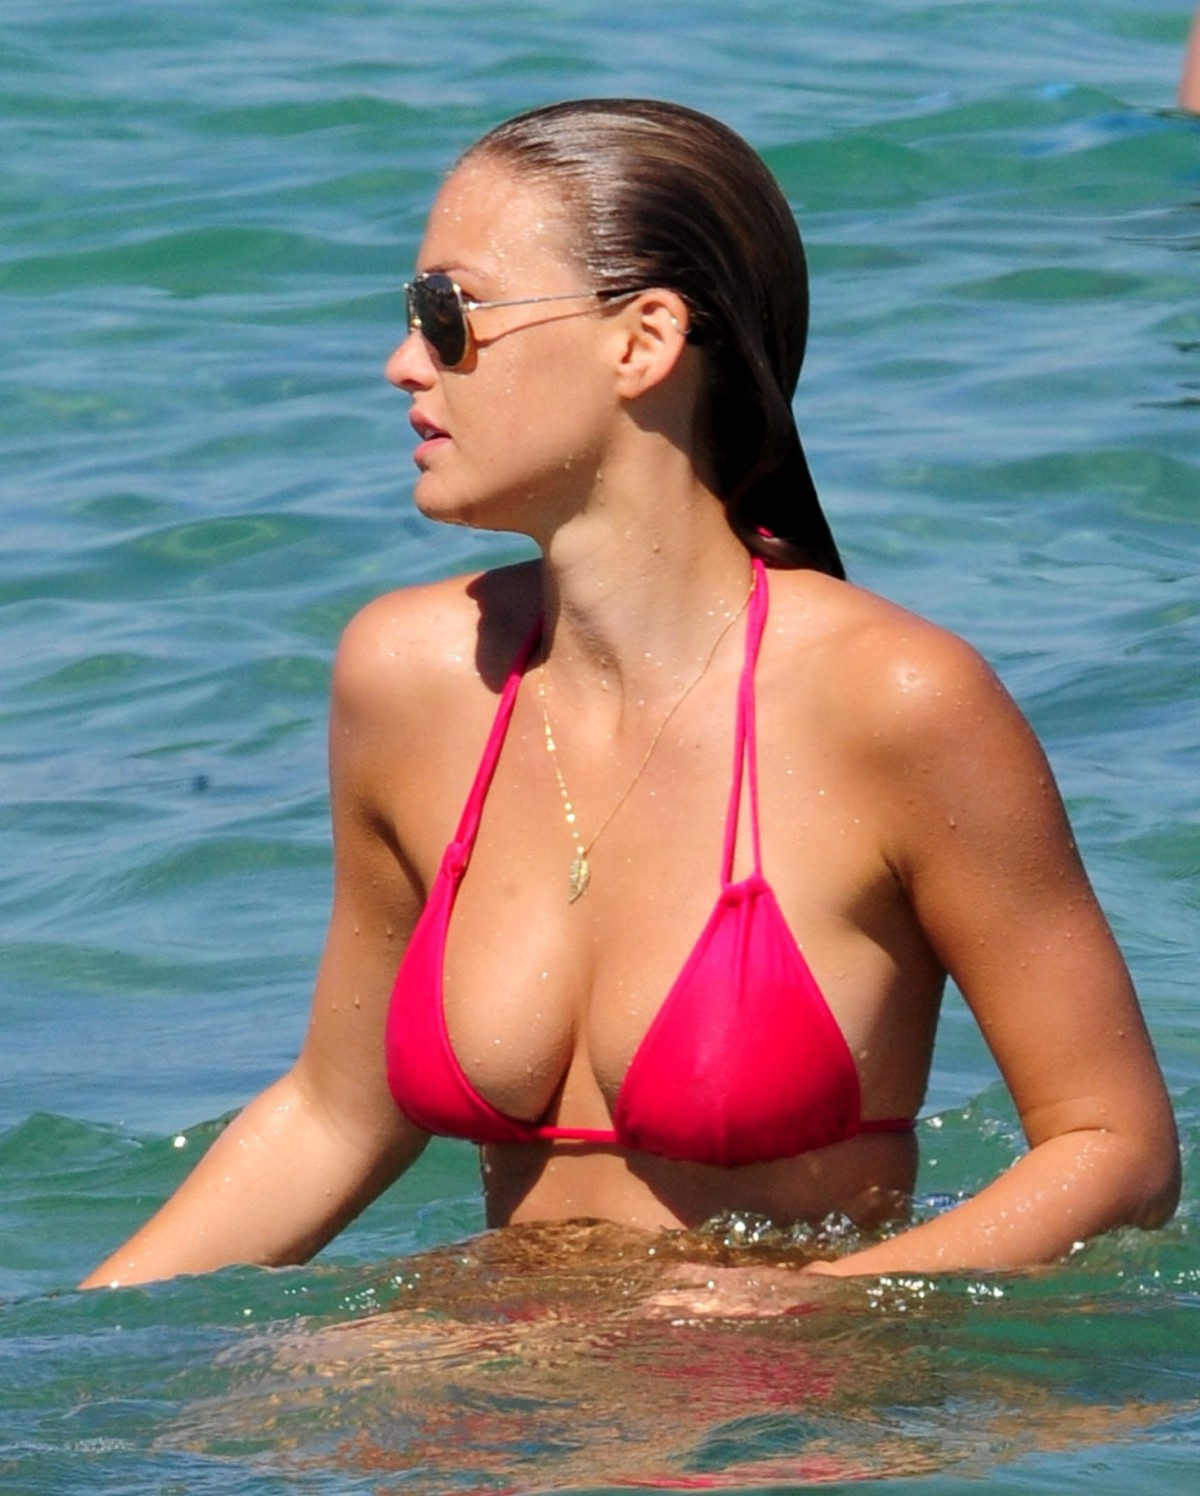 Bar Refaeli Bikini Bodies  Pic 29 of 35